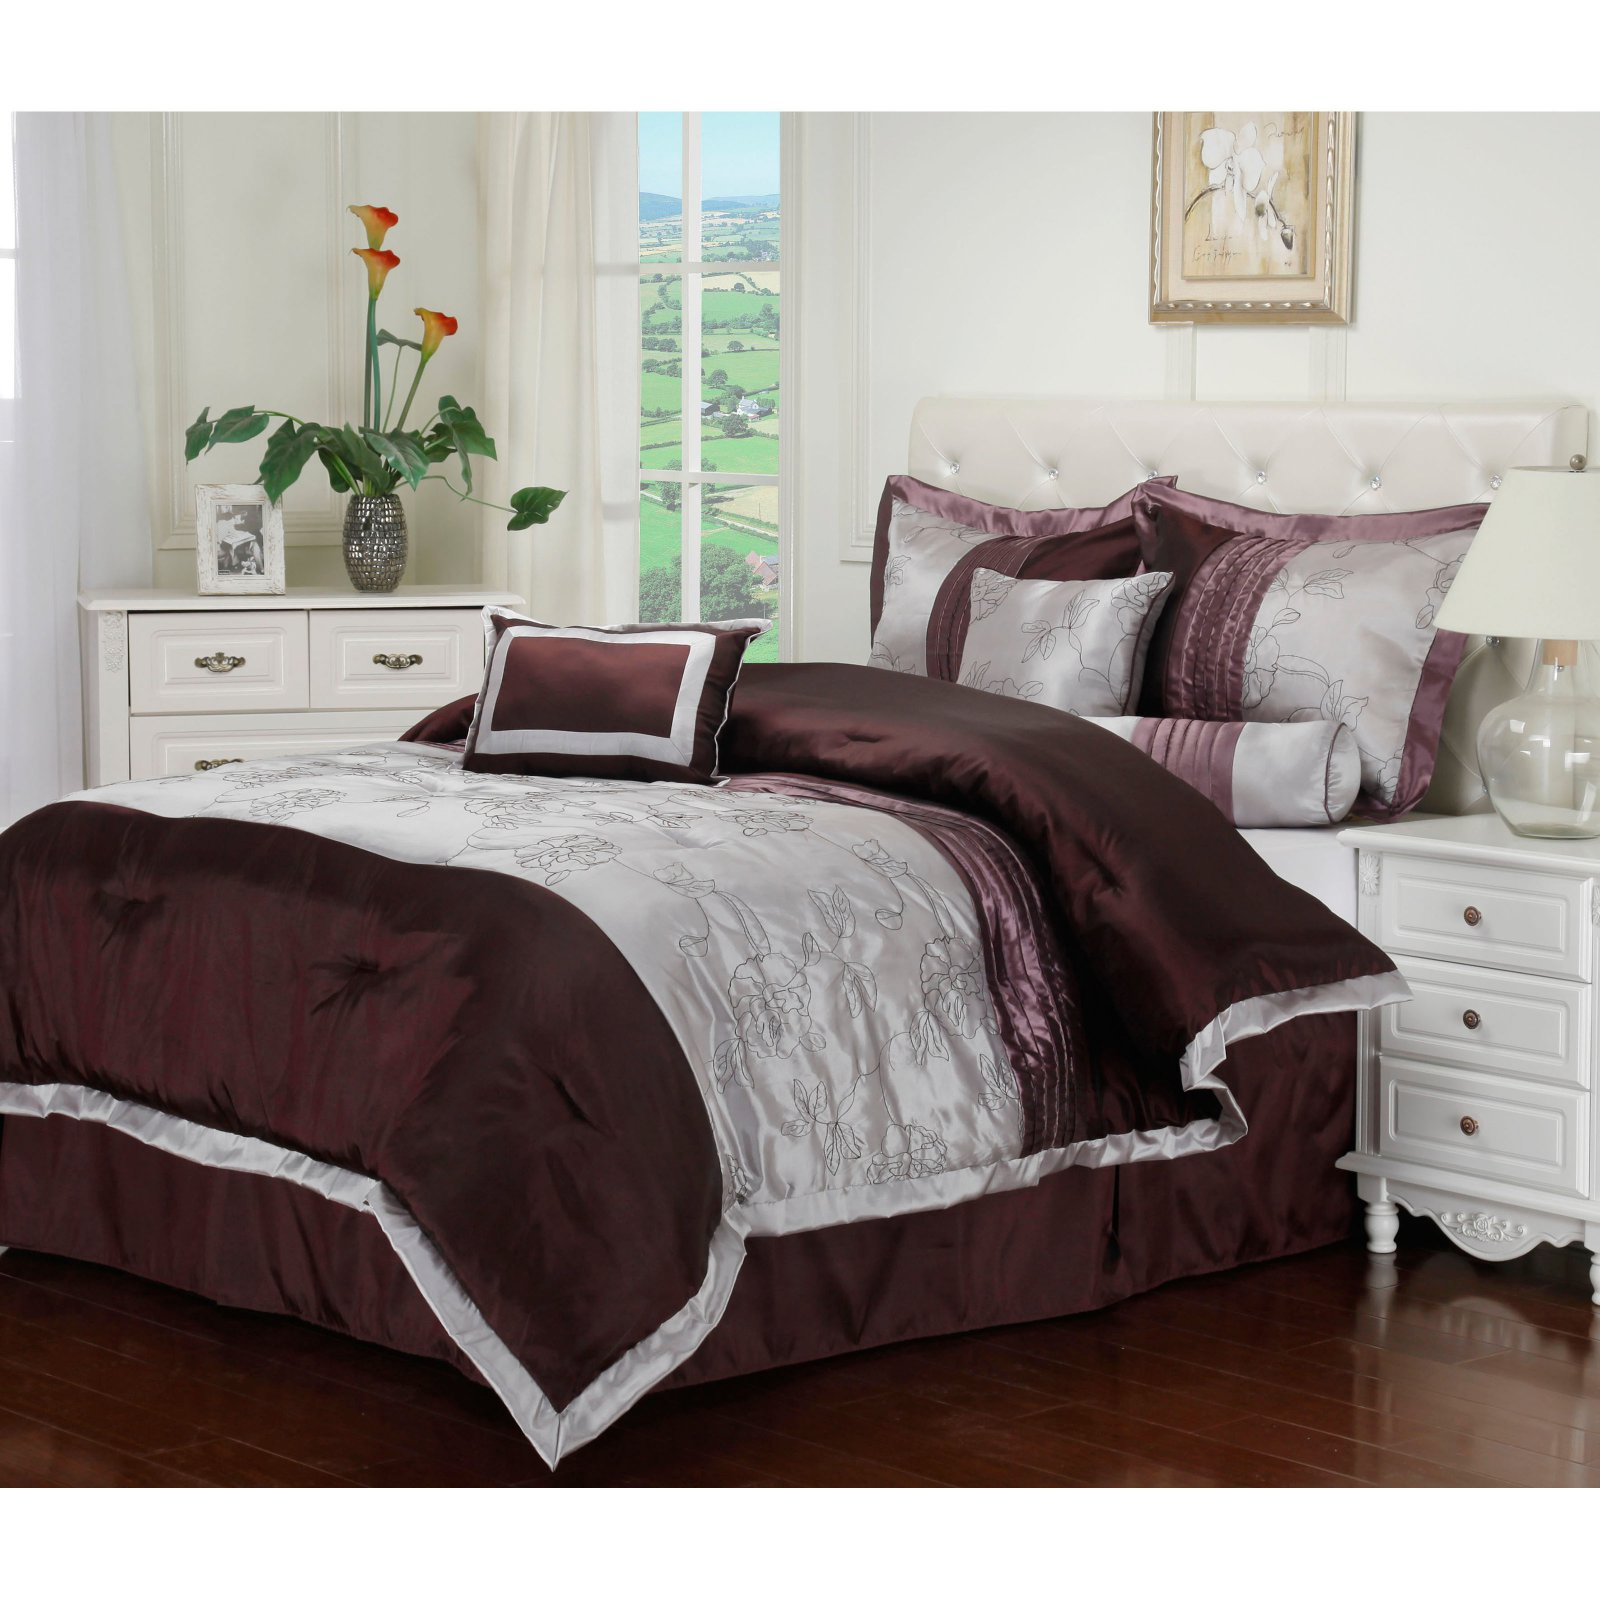 Superior Kashmir 7 Piece Bedding Set